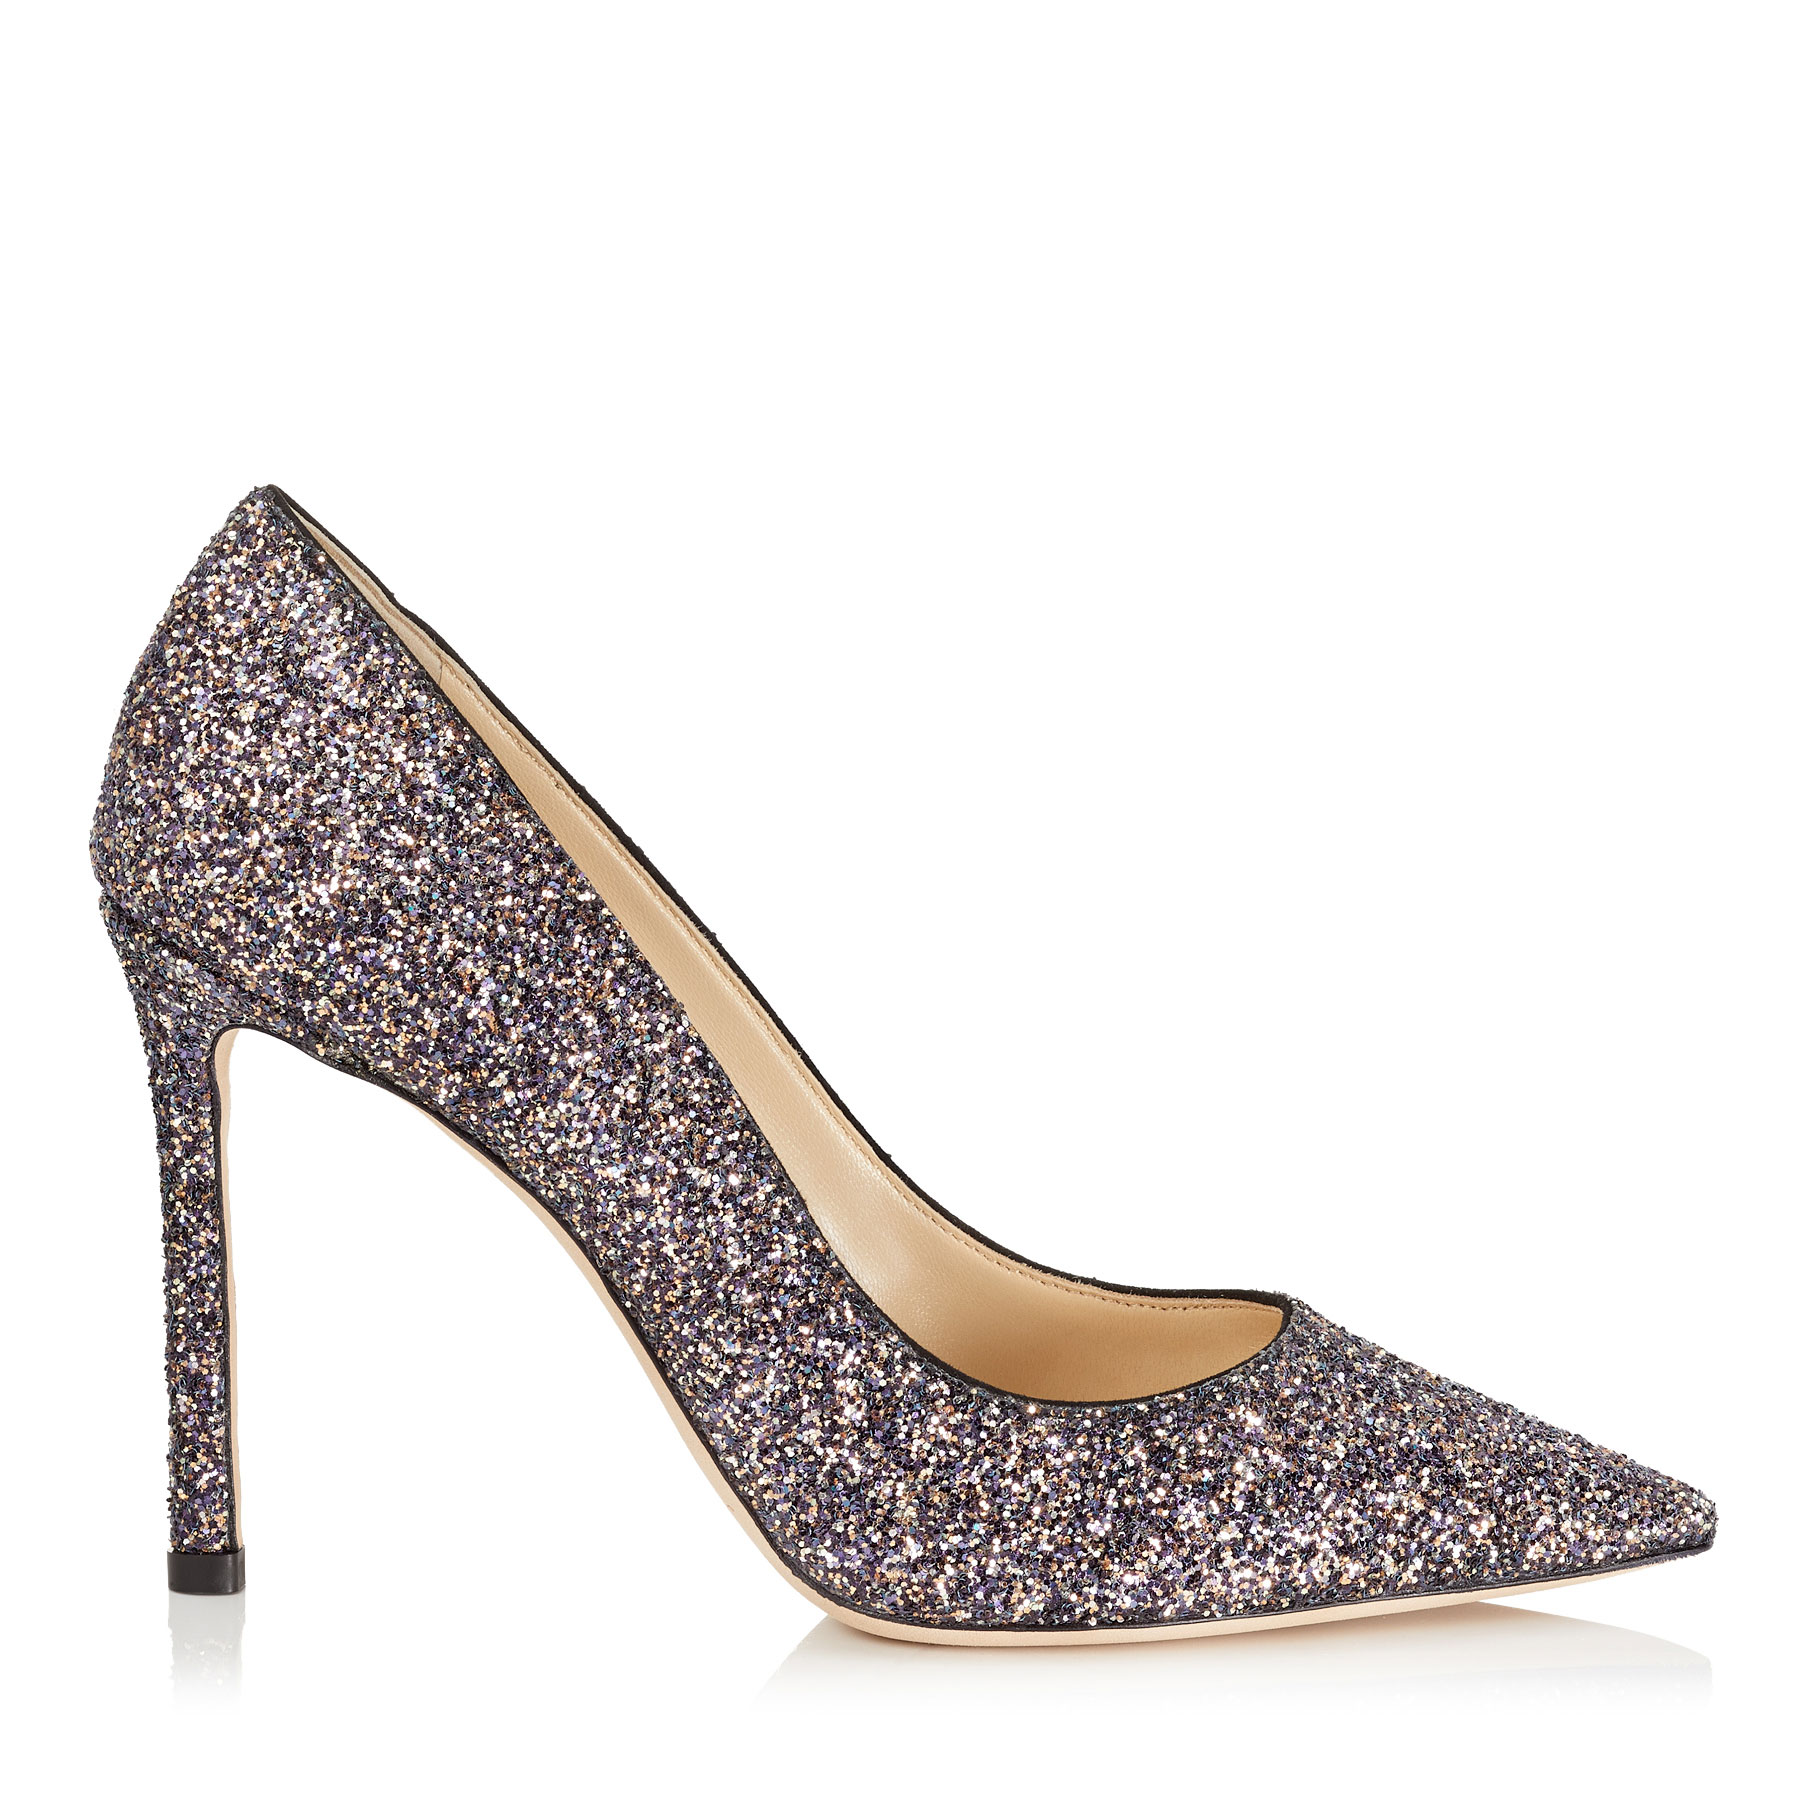 ROMY 100 Twilight Glitzy Glitter Fabric Pointy Toe Pumps by Jimmy Choo